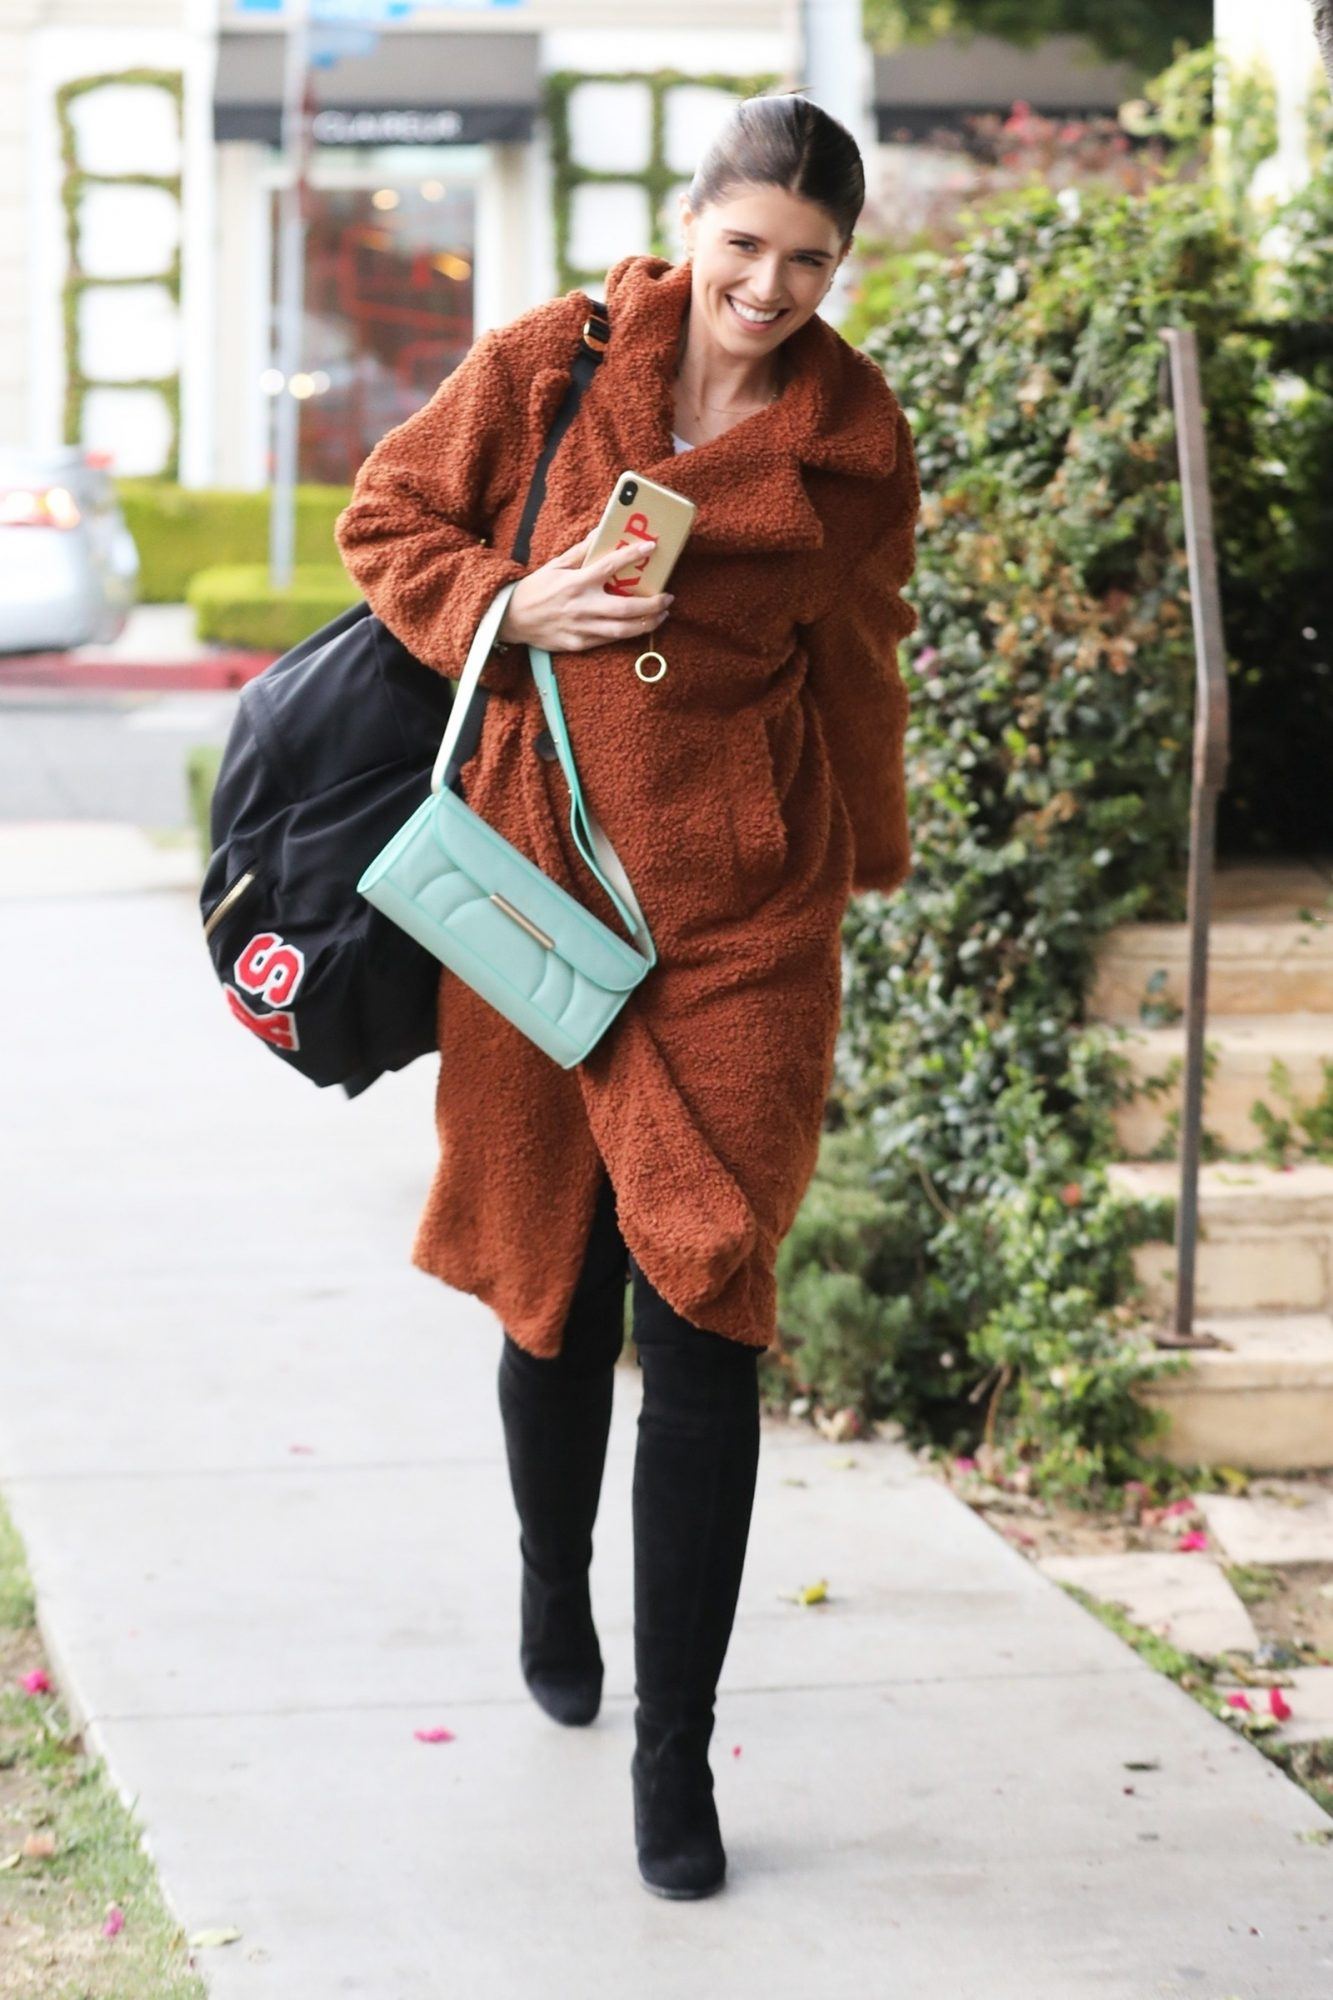 With fall weather officially in swing, I need a plush teddy coat likeKatherine Schwarzenegger's to stay warm - Sabrina                             Steal this star's cozy-yet-chic style with Lou & Grey's Teddy Coat, which comes in four fall-ready colors. Follow Schwarzenegger's lead andpair this statement jacket with all black for a sophisticated look.